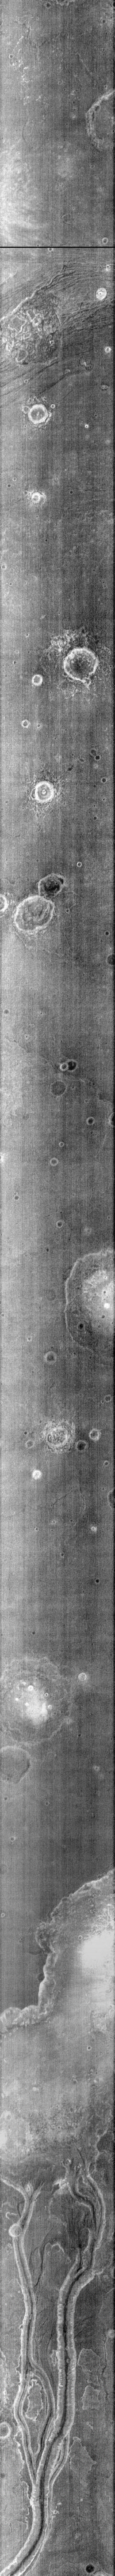 Near the bottom of this nighttime image captured by NASA's 2001 Mars Odyssey spacecraft are several channels. The dusty channel floors are darker (colder) than the rocky walls.